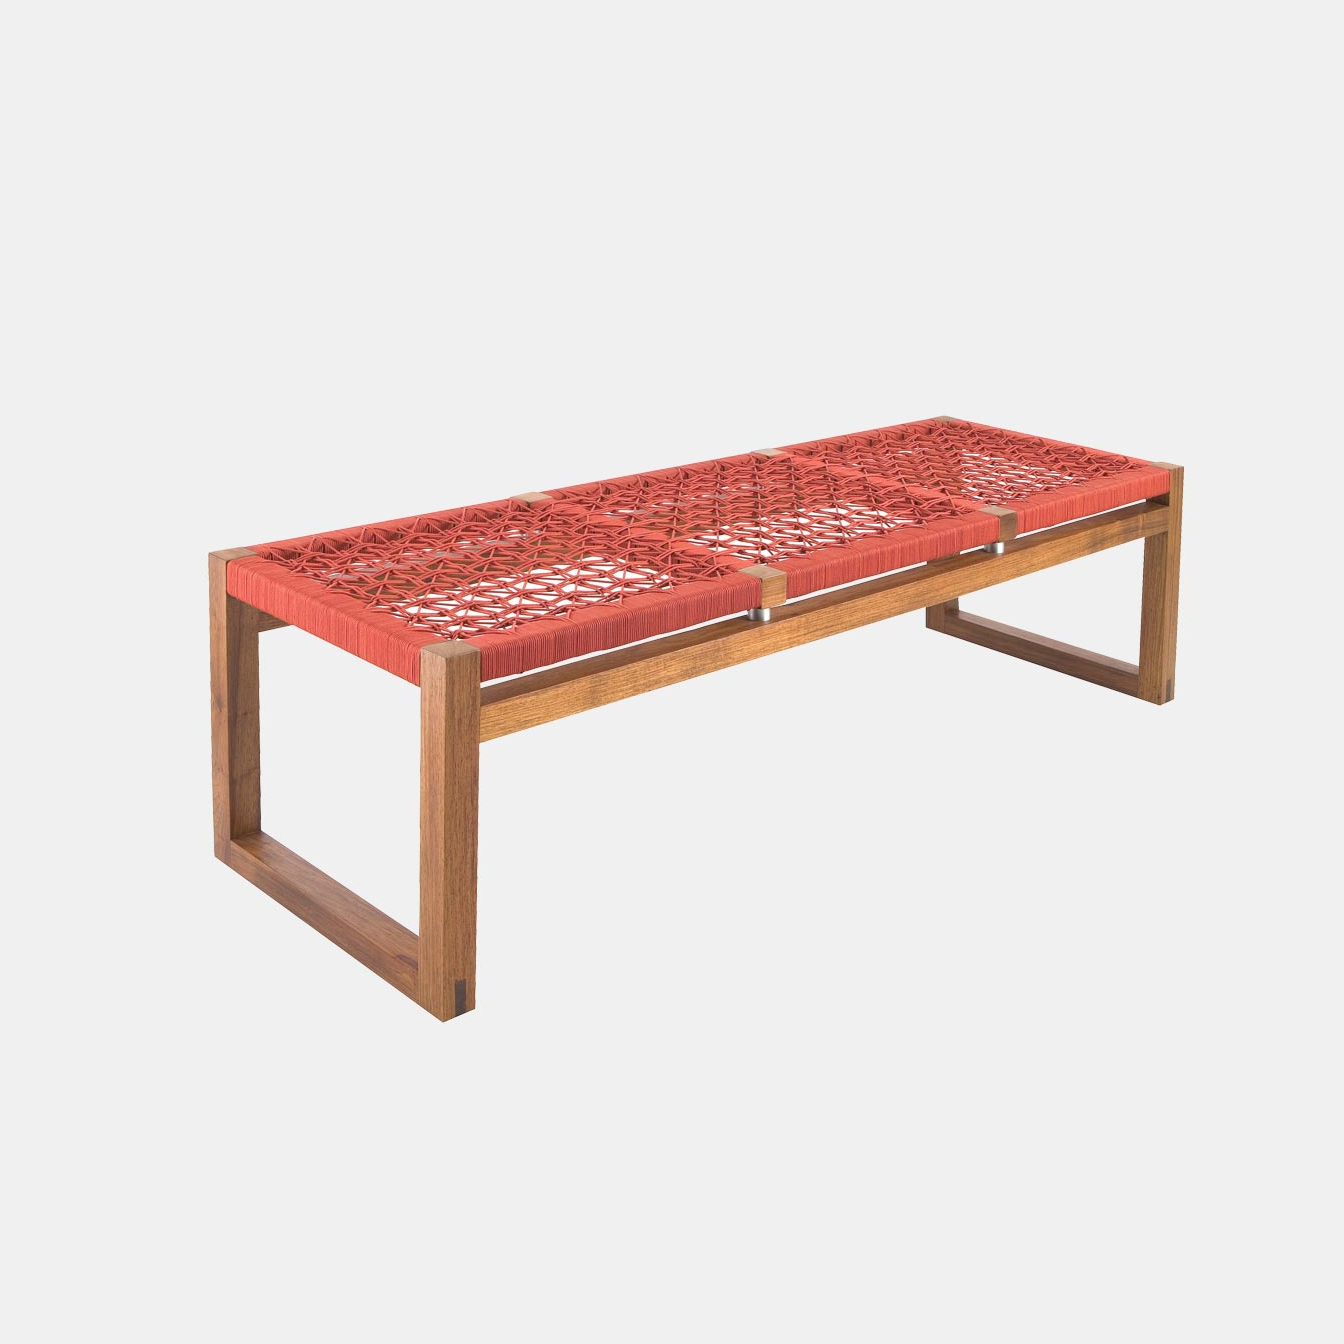 Cube Bench 2 Seat Contemporary African Design